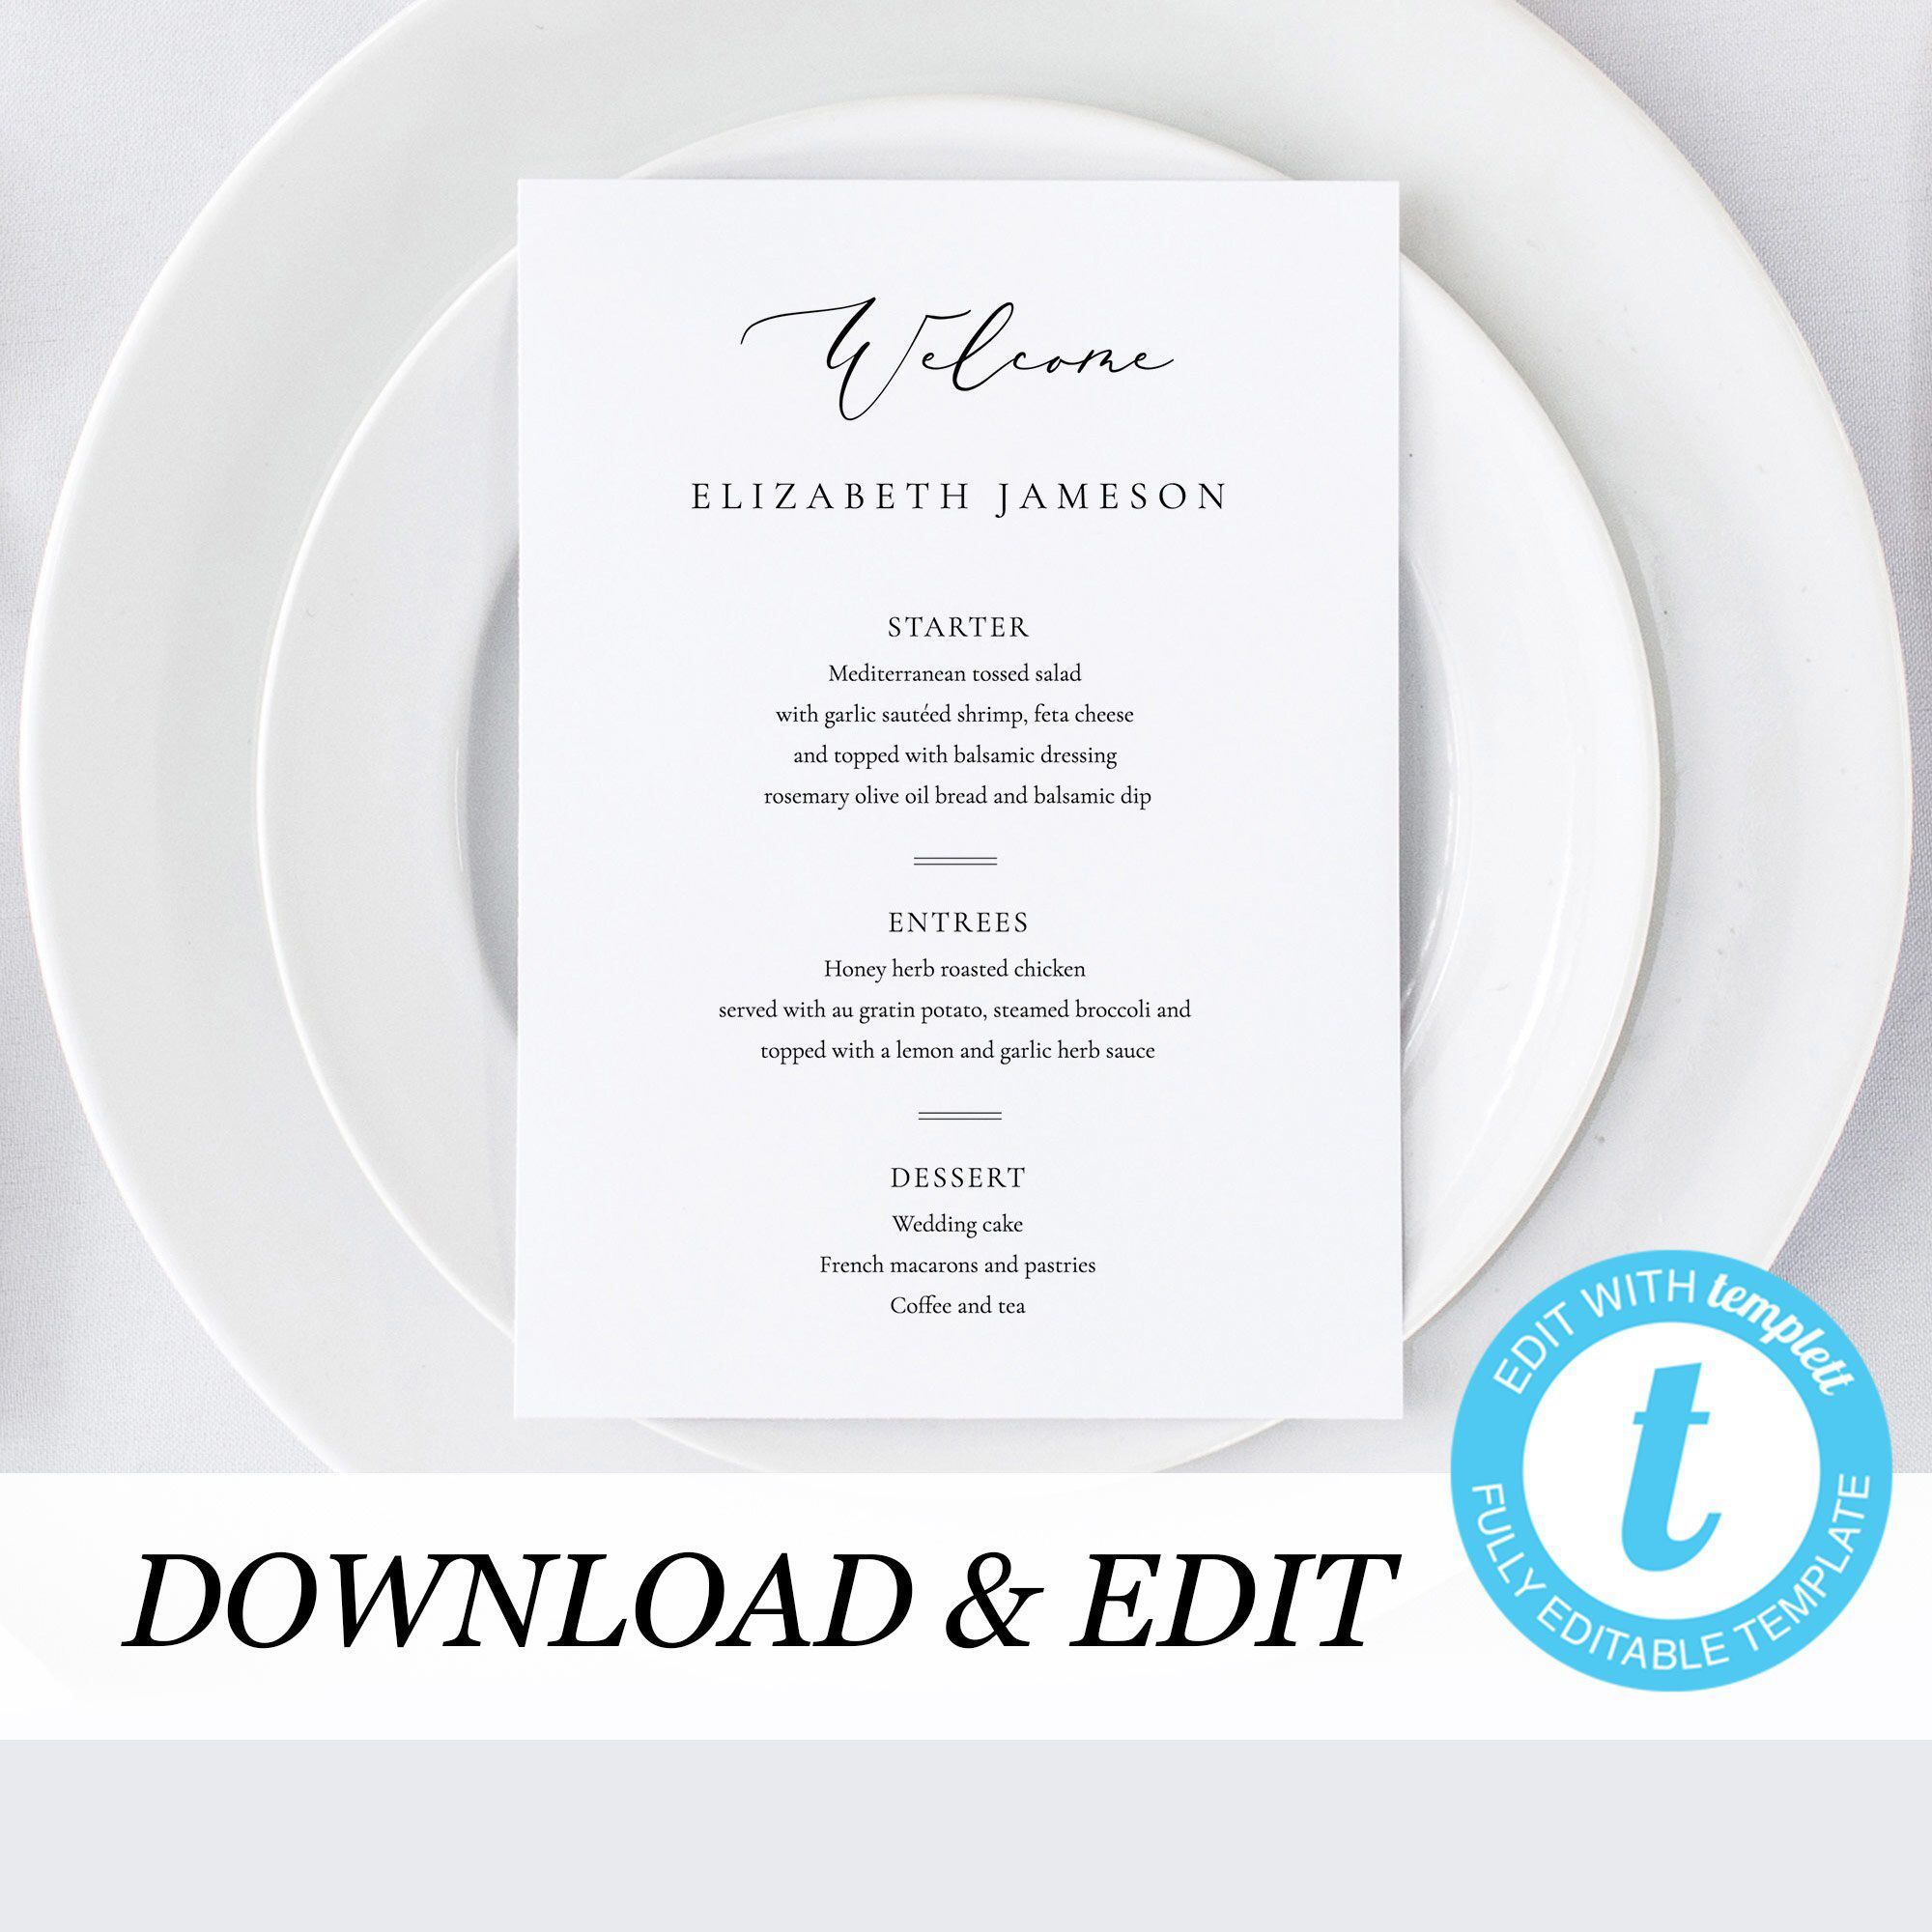 Wedding Menu Place Cards Template Printable Wedding Place Card Escort Card Menu Template Simple Modern Wedding Instant download Templett 11 #weddingmenutemplate This Personalized Wedding Menu template is fully editable and perfect for the DIY bride. Simple and elegant and will definitely make a statement. Get access to your template within minutes of purchase and create your perfect printable today, no more waiting for designers! This template is fully editable directly in your browser using the #weddingmenutemplate